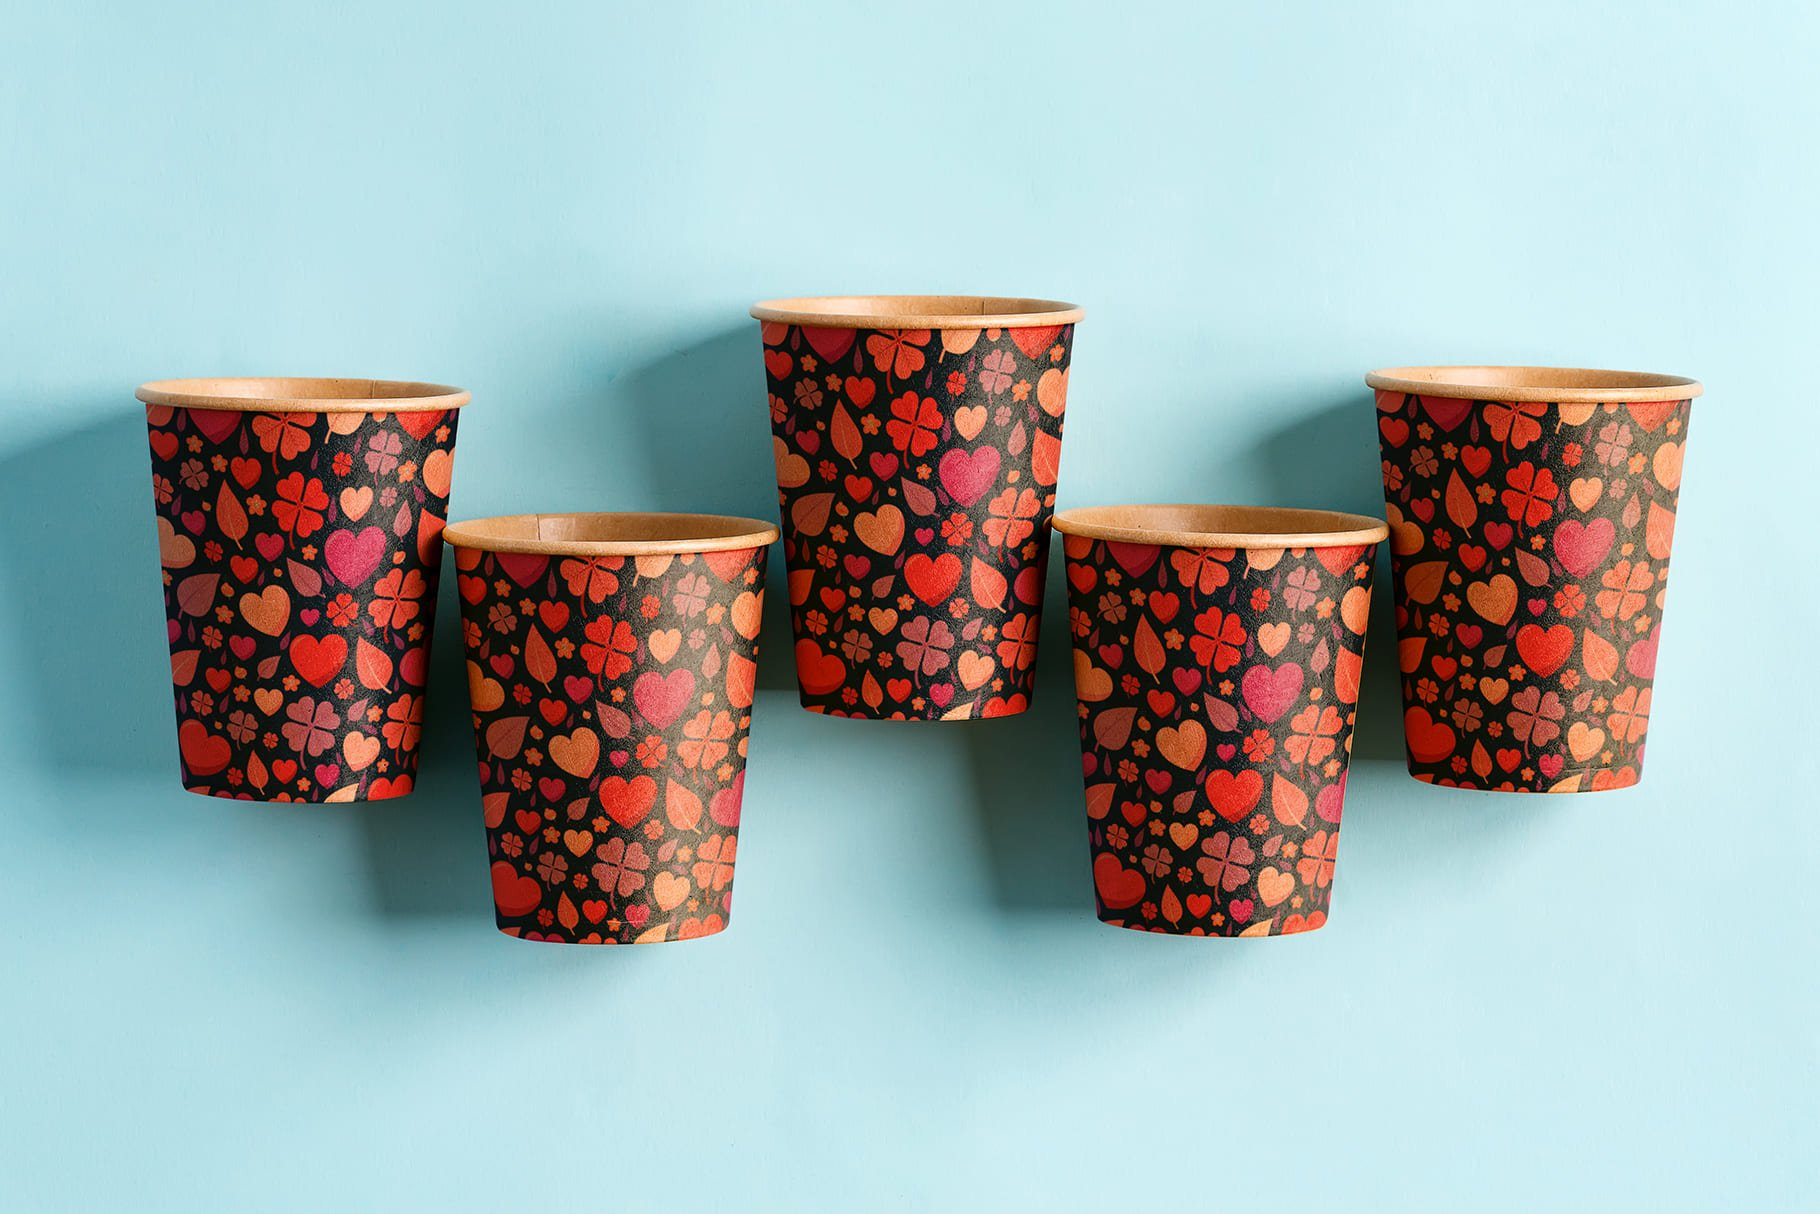 Disposable cardboard cups. About nature with love.